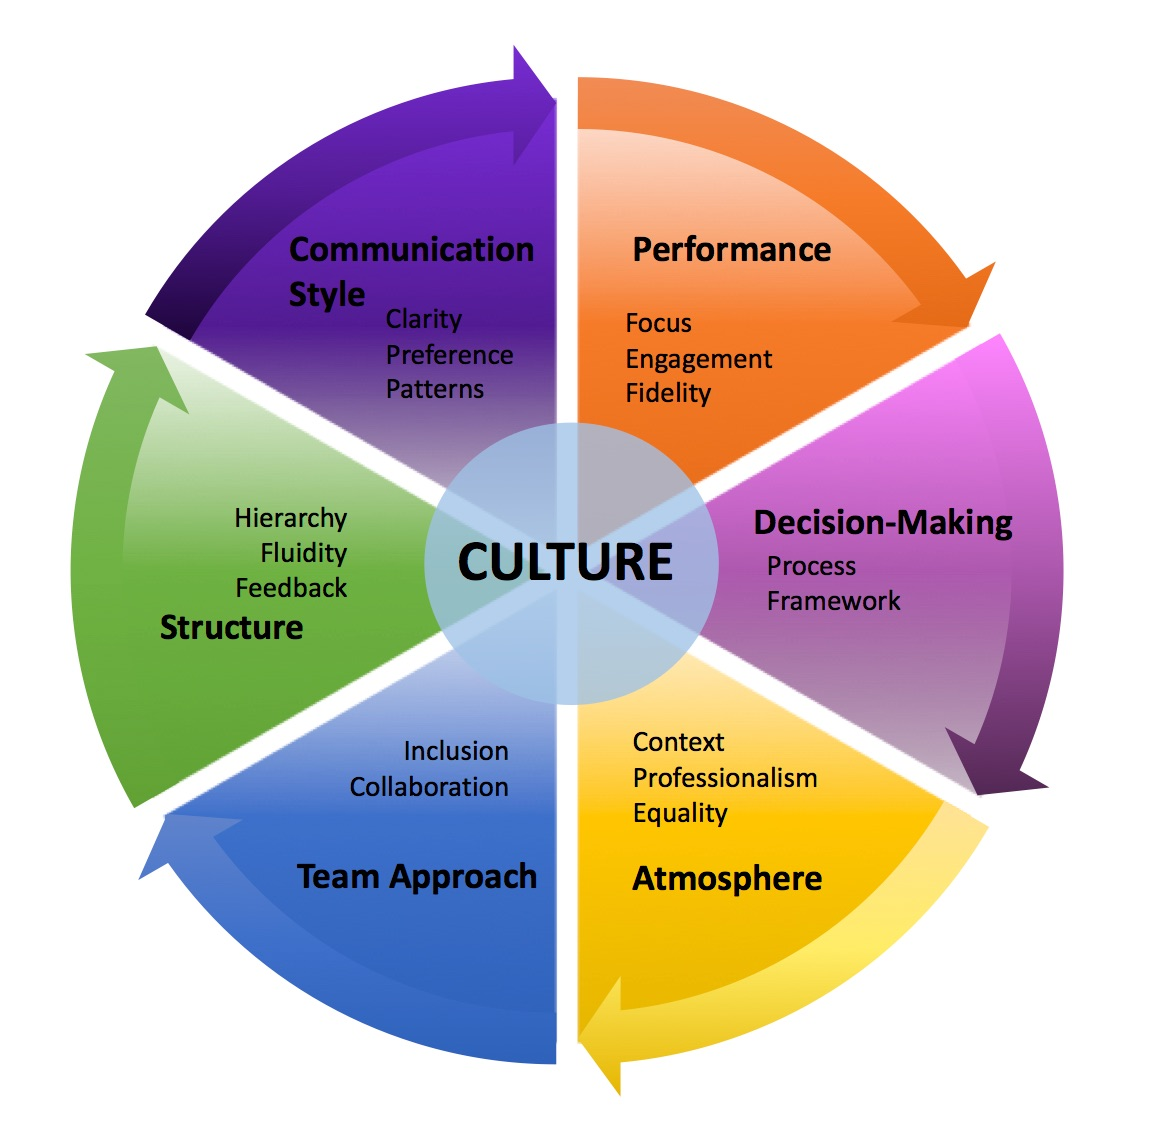 Business coaching can help in assessing organizational culture